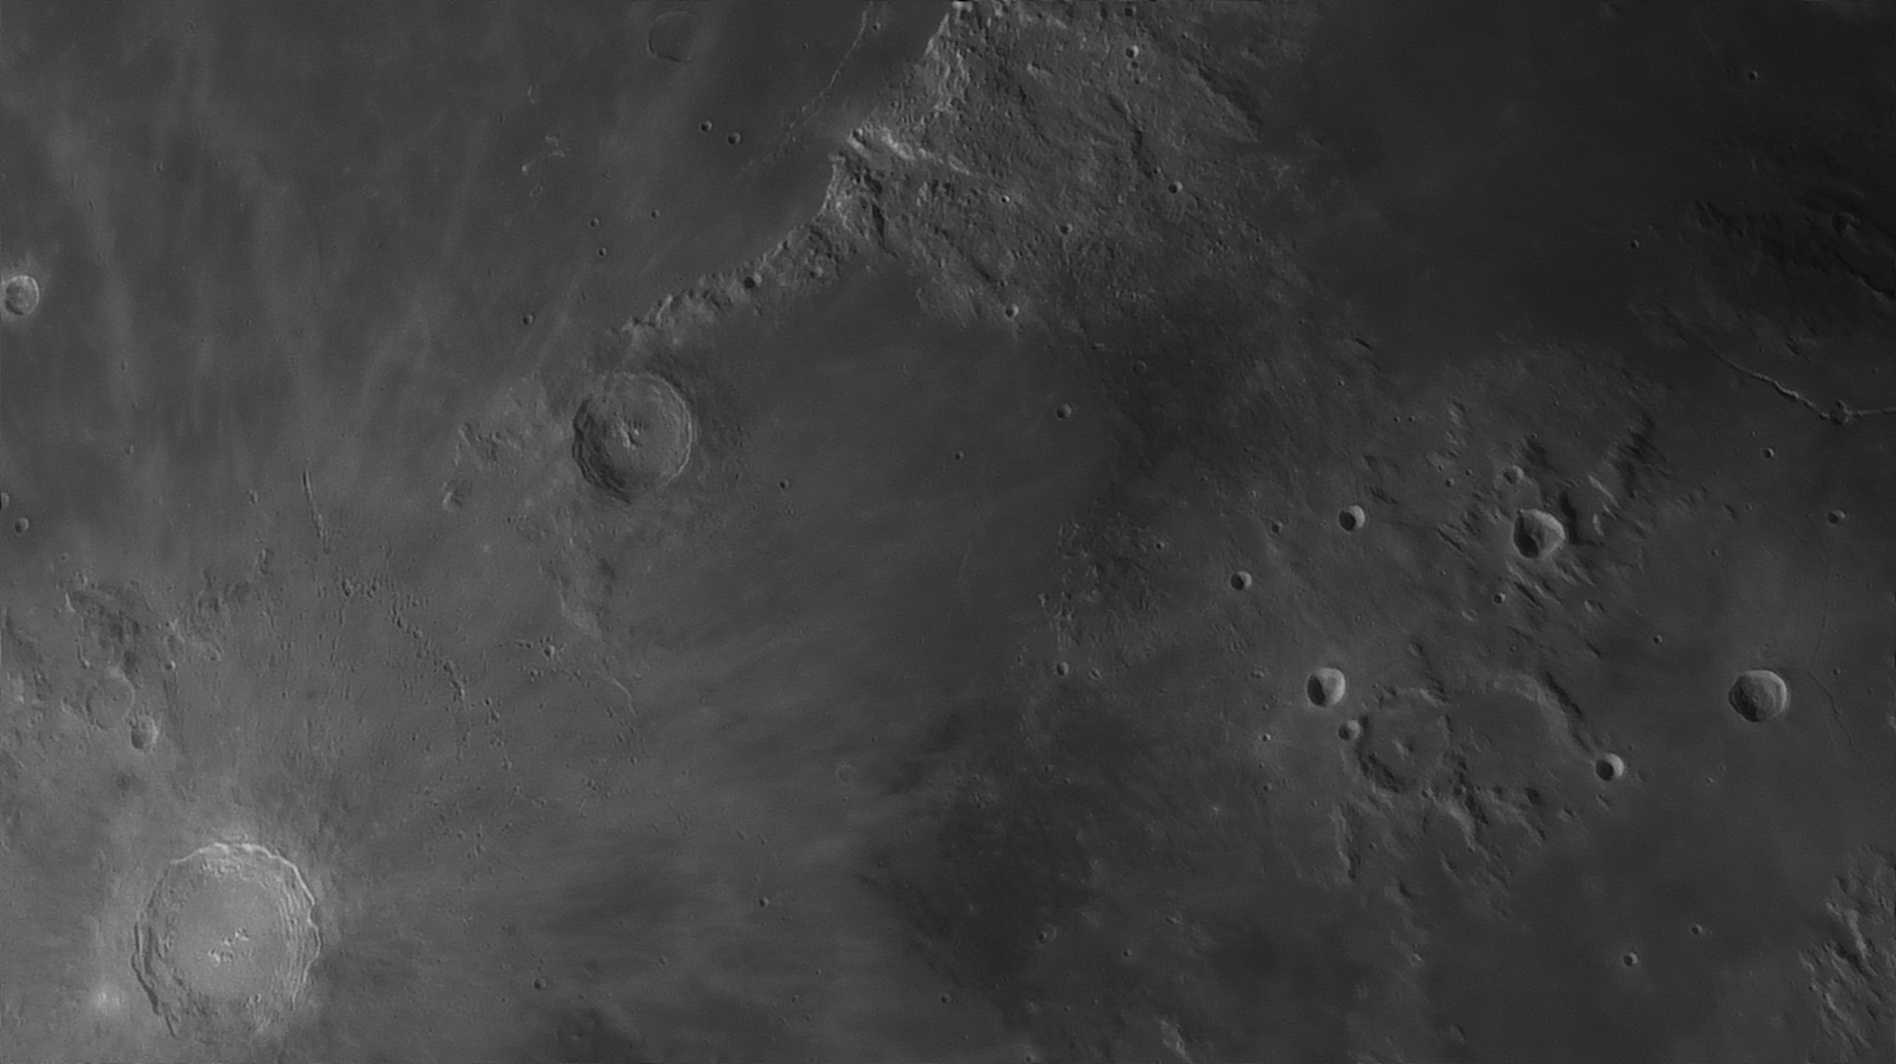 5e51956bf1278_Moon_054840_160120_ZWOASI290MM_Rouge_23A_AS_P35_lapl6_ap1067_AI_Deconvolution_11--.jpg.5f7f467effda4d964b3bd86c104c4ce3.jpg